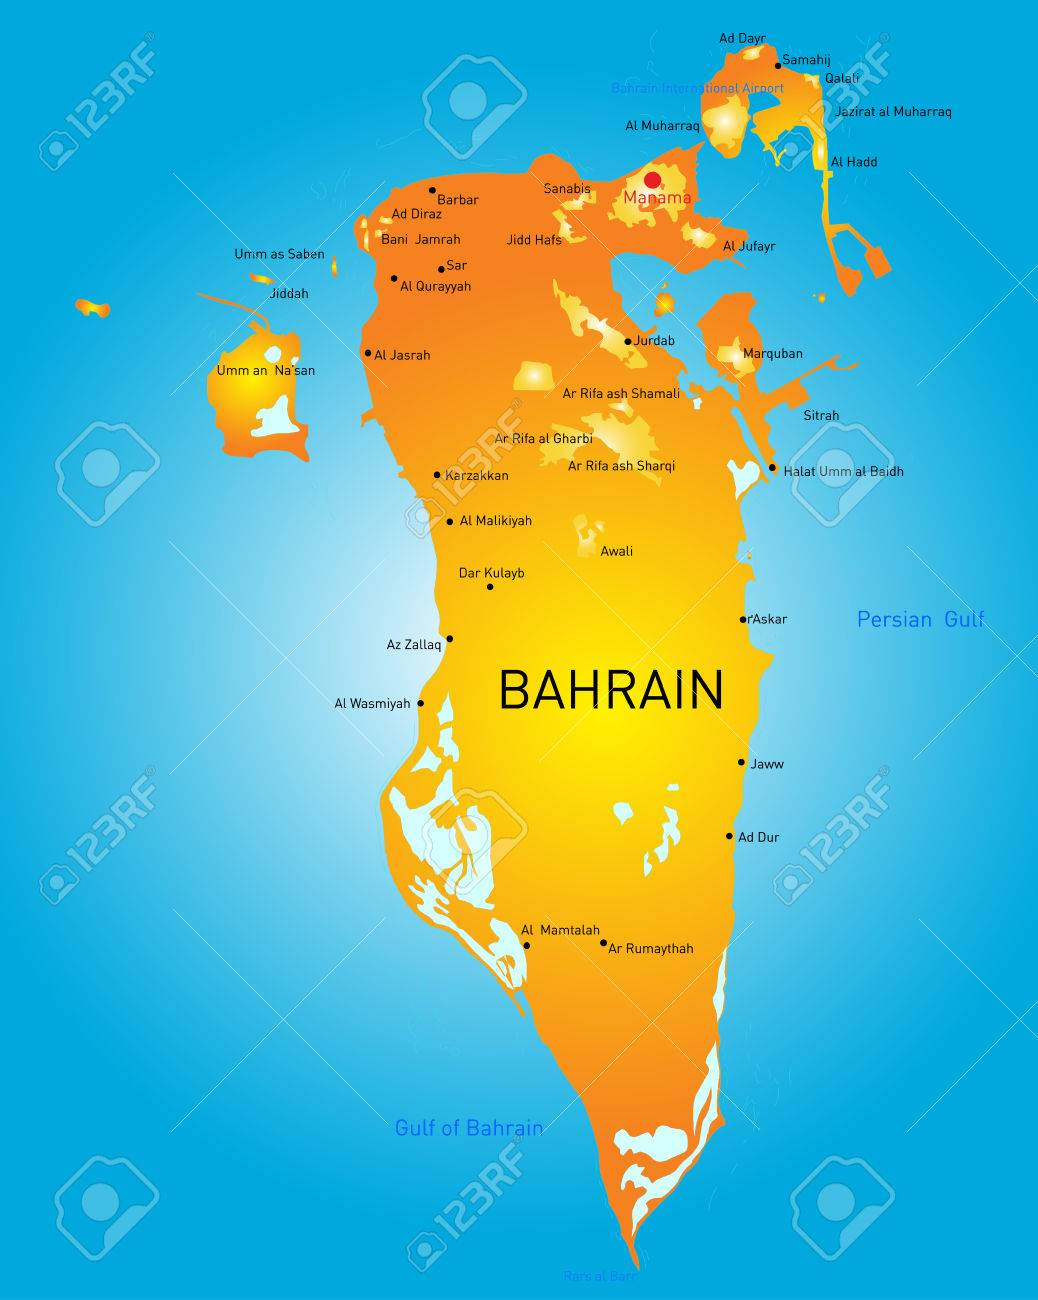 Kingdom Of Bahrain Vector Color Map Royalty Free Cliparts Vectors